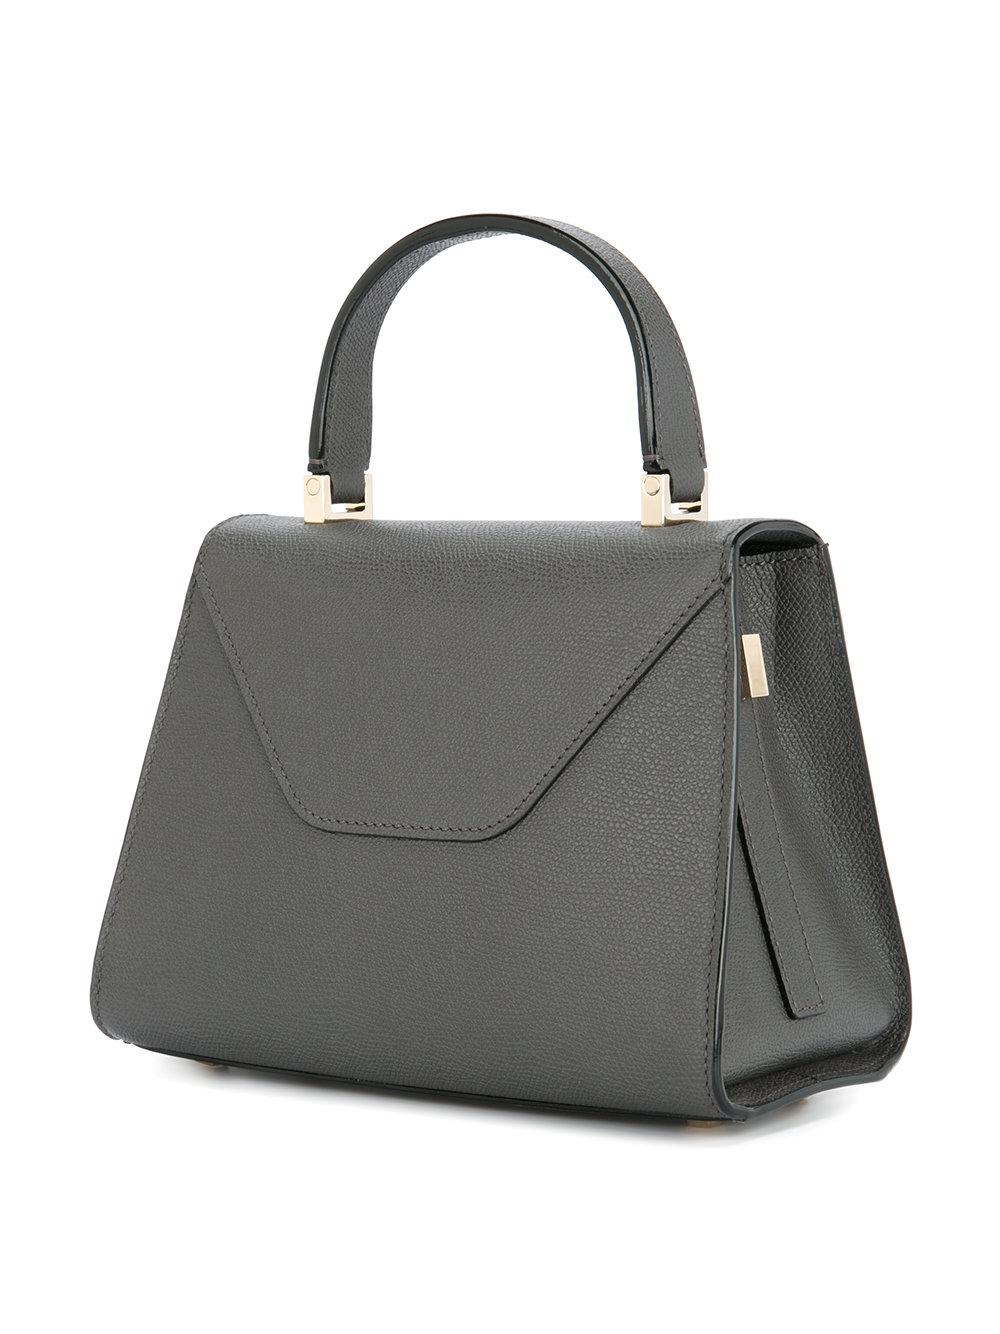 Valextra Leather Small Iside Tote Bag in Grey (Grey)